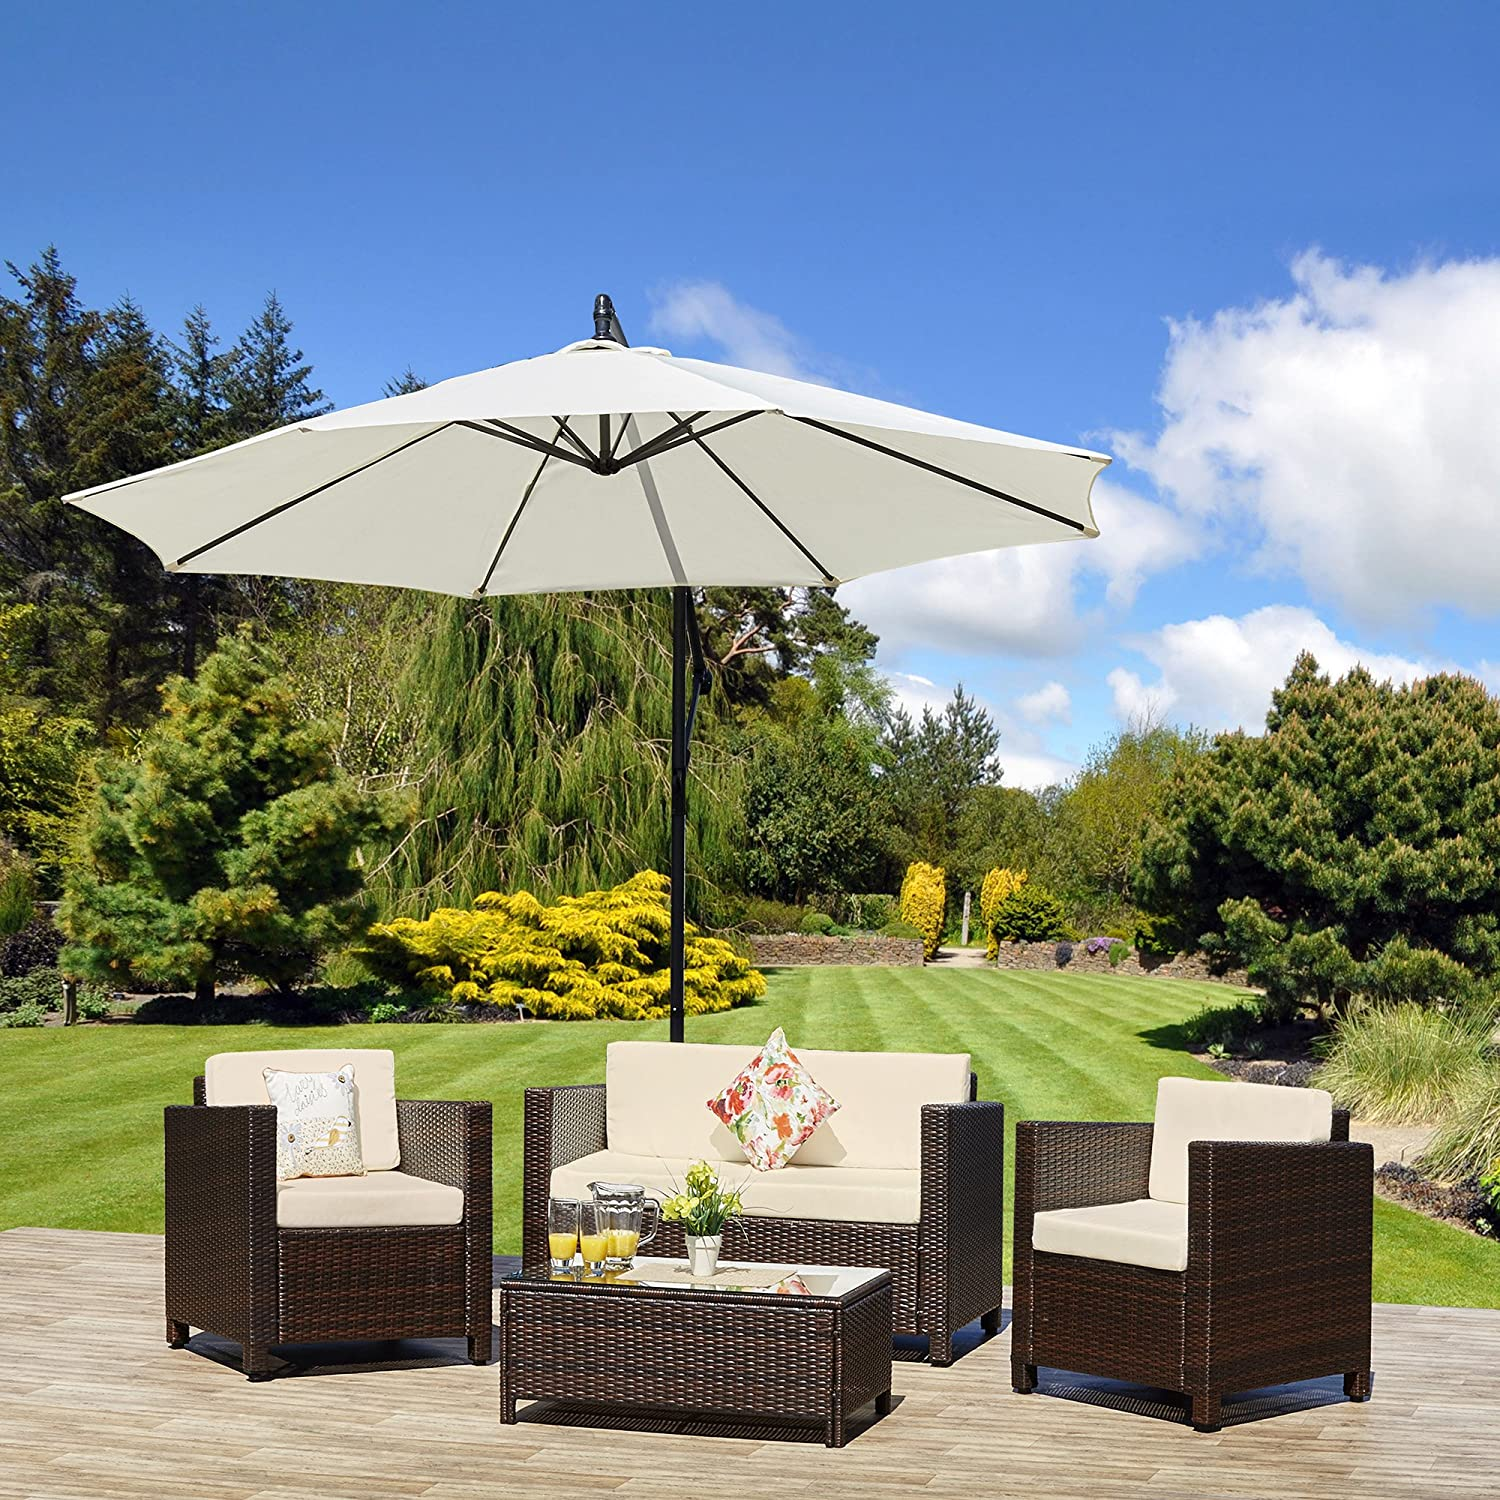 new roma rattan wicker weave garden furniture patio conservatory sofa set includes outdoor protective cover